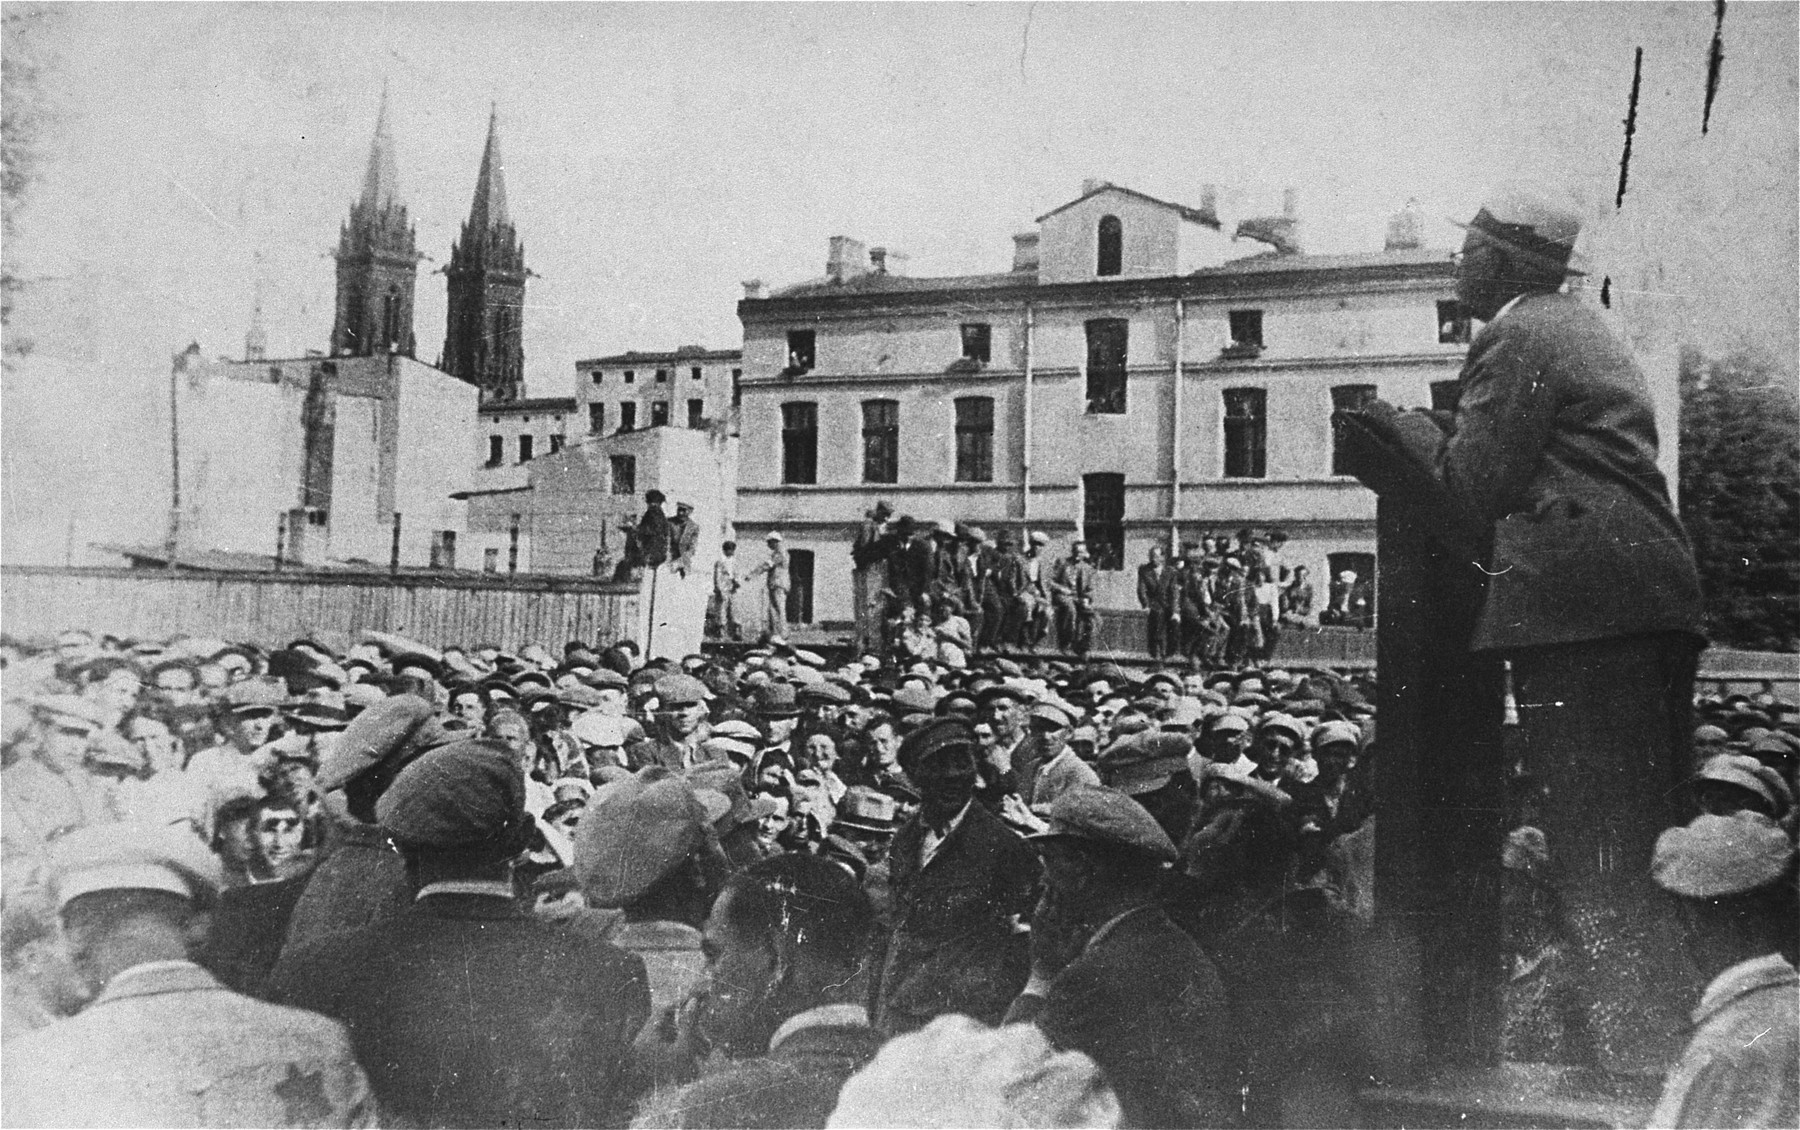 Mordechai Chaim Rumkowski, chairman of the Lodz ghetto Jewish Council, delivers a speech to a crowd of Jews gathered in a public square on Lutomierska Street in the Lodz ghetto.